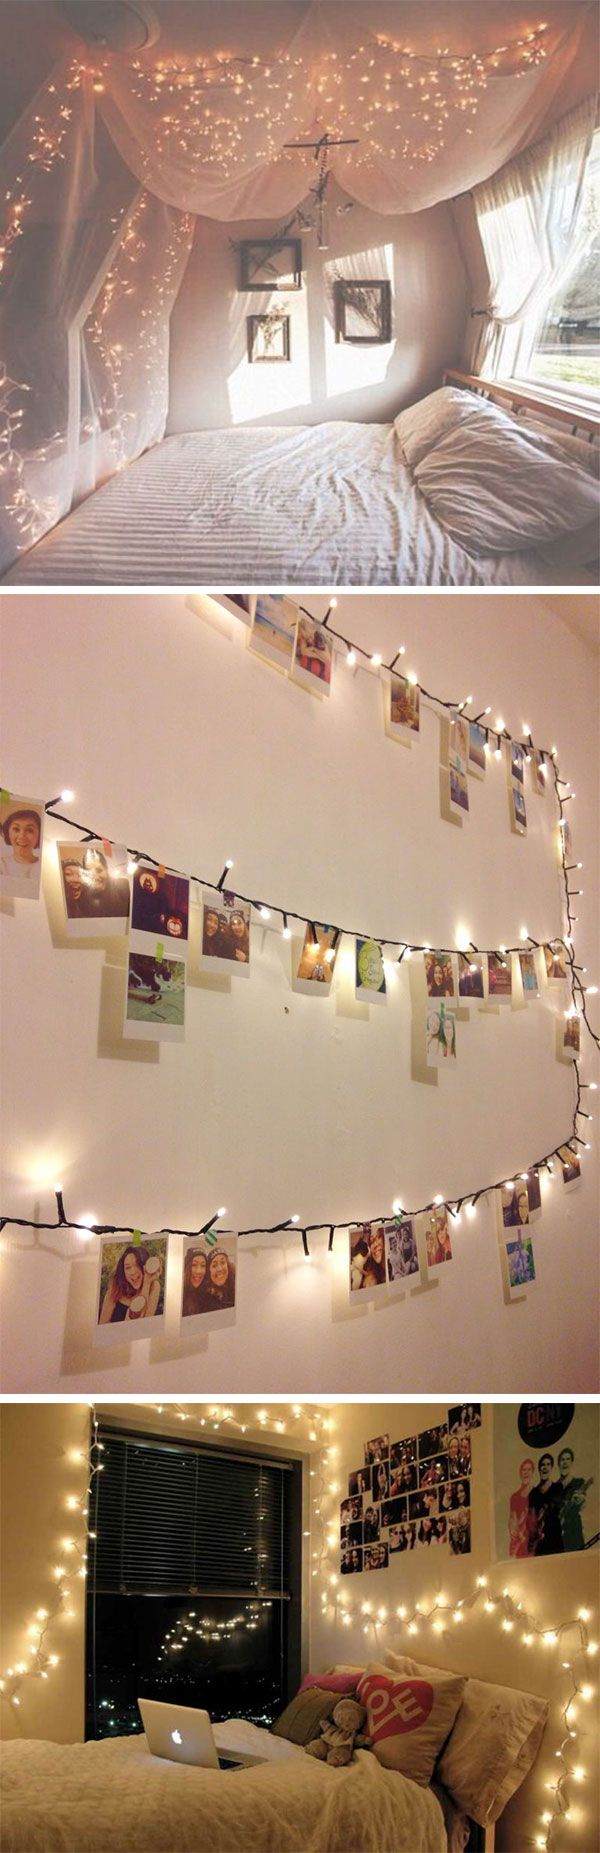 13 Ways To Use Fairy Lights Make Your Bedroom Look Magical Pinterest Bedrooms And Inspiration